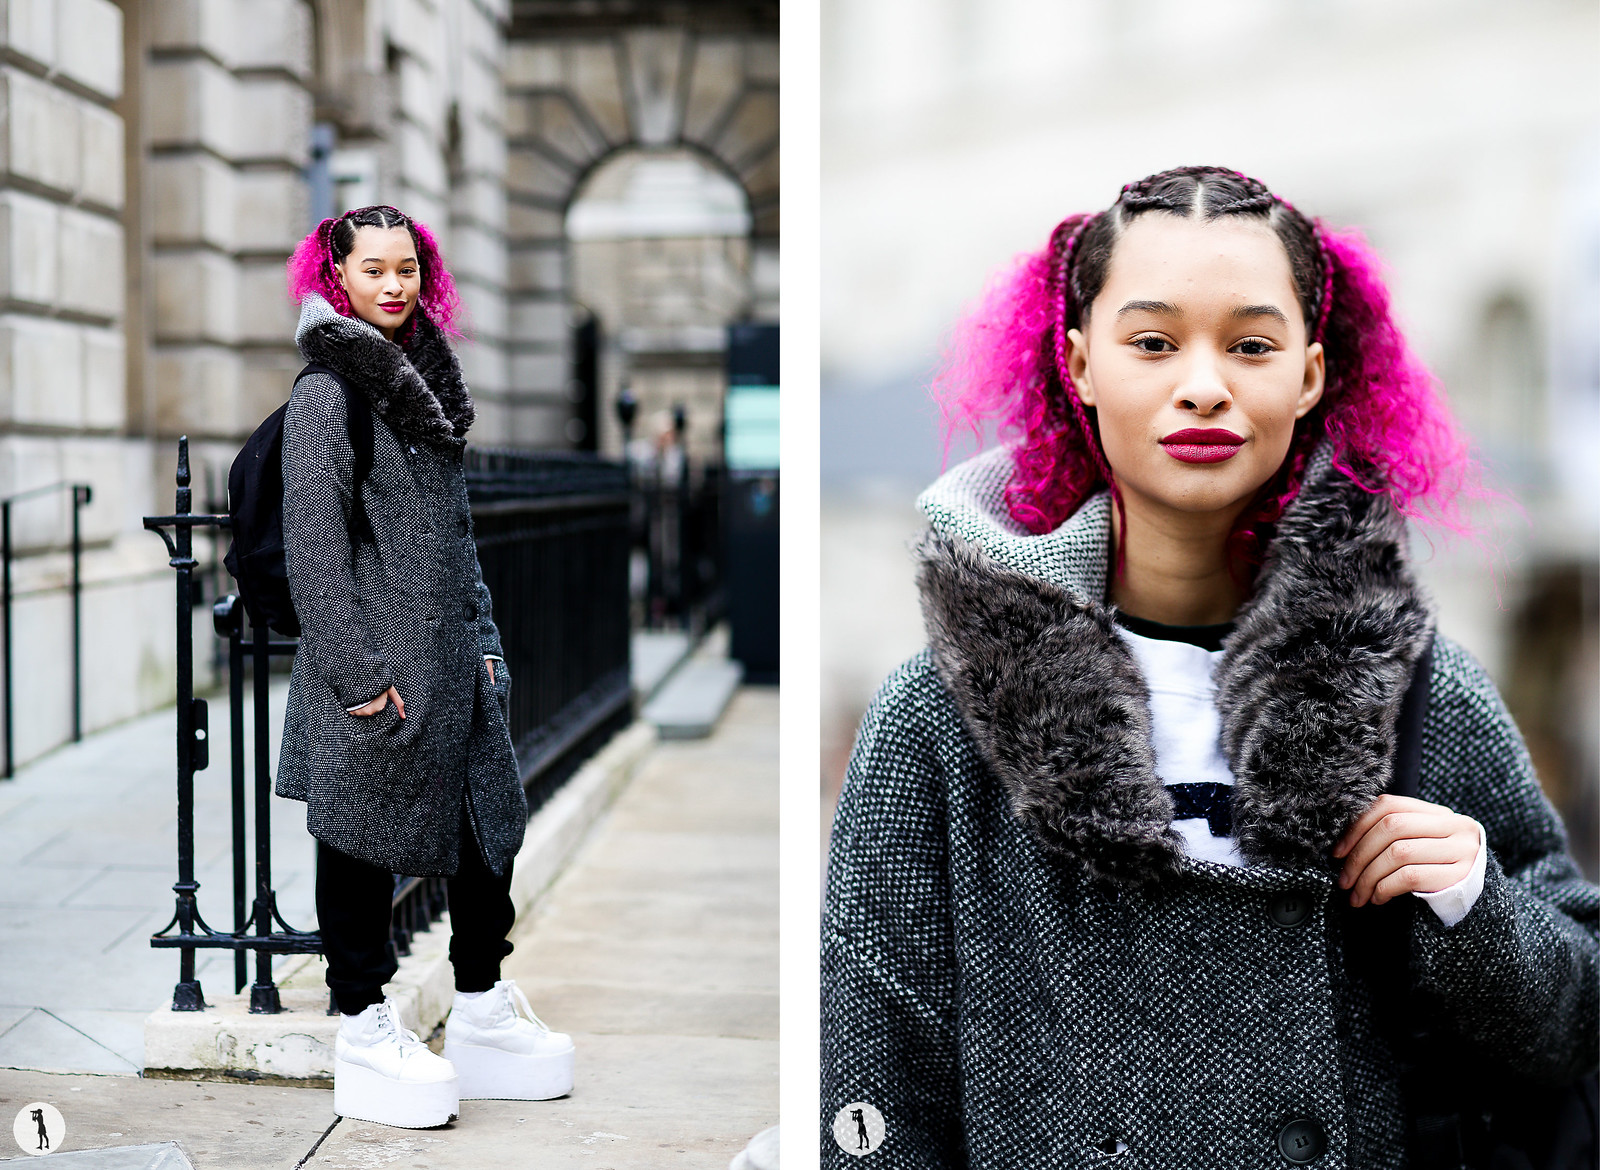 Street style - London Fashion Week RDT FW15-16